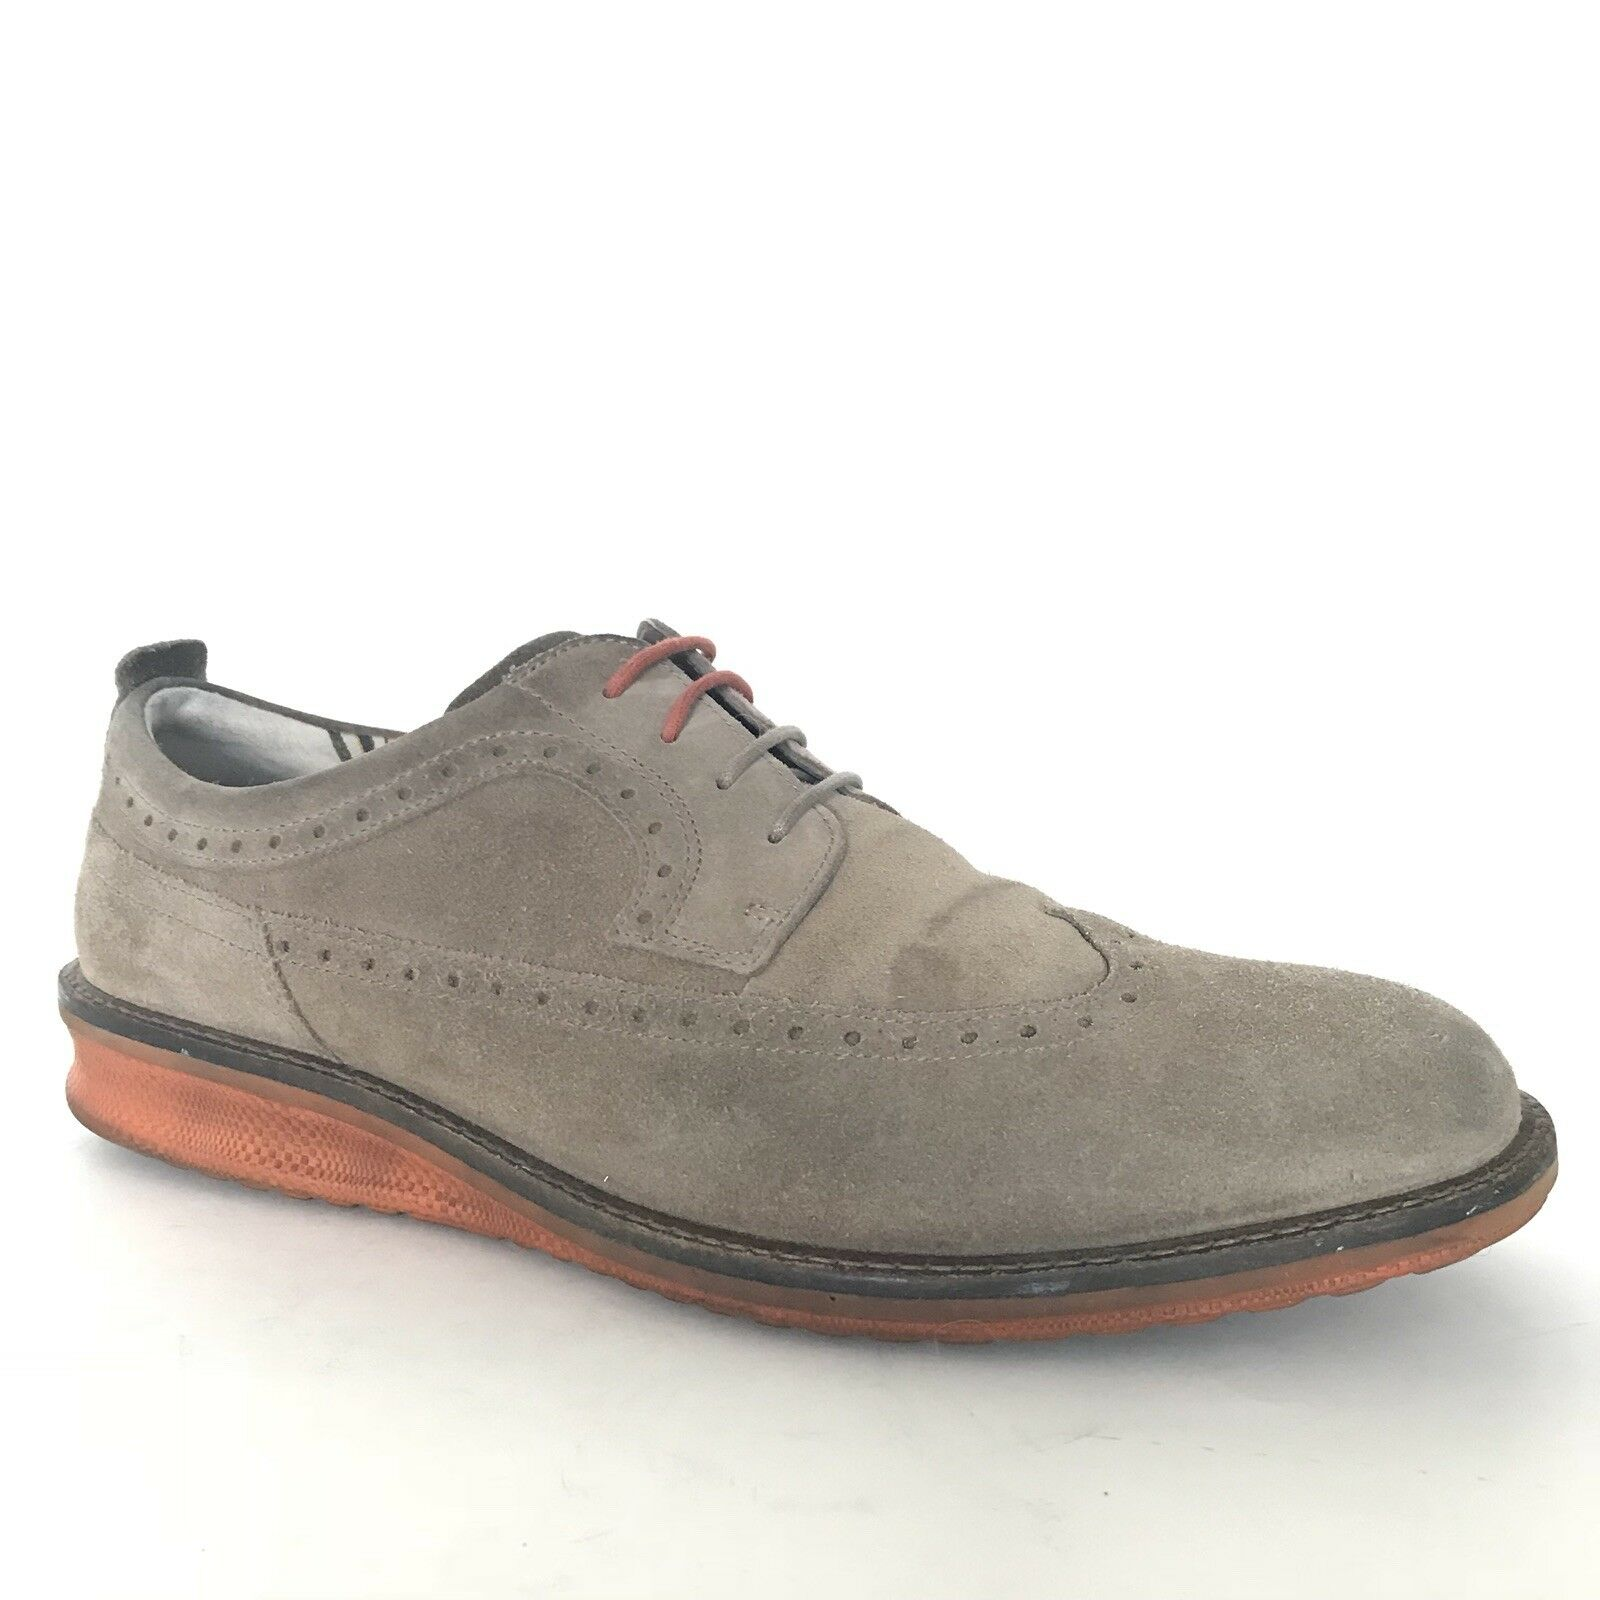 ECCO Mens Leather Wingtip Sneakers Size 11 EUR 45 UK 10 Lace Up Comfort shoes